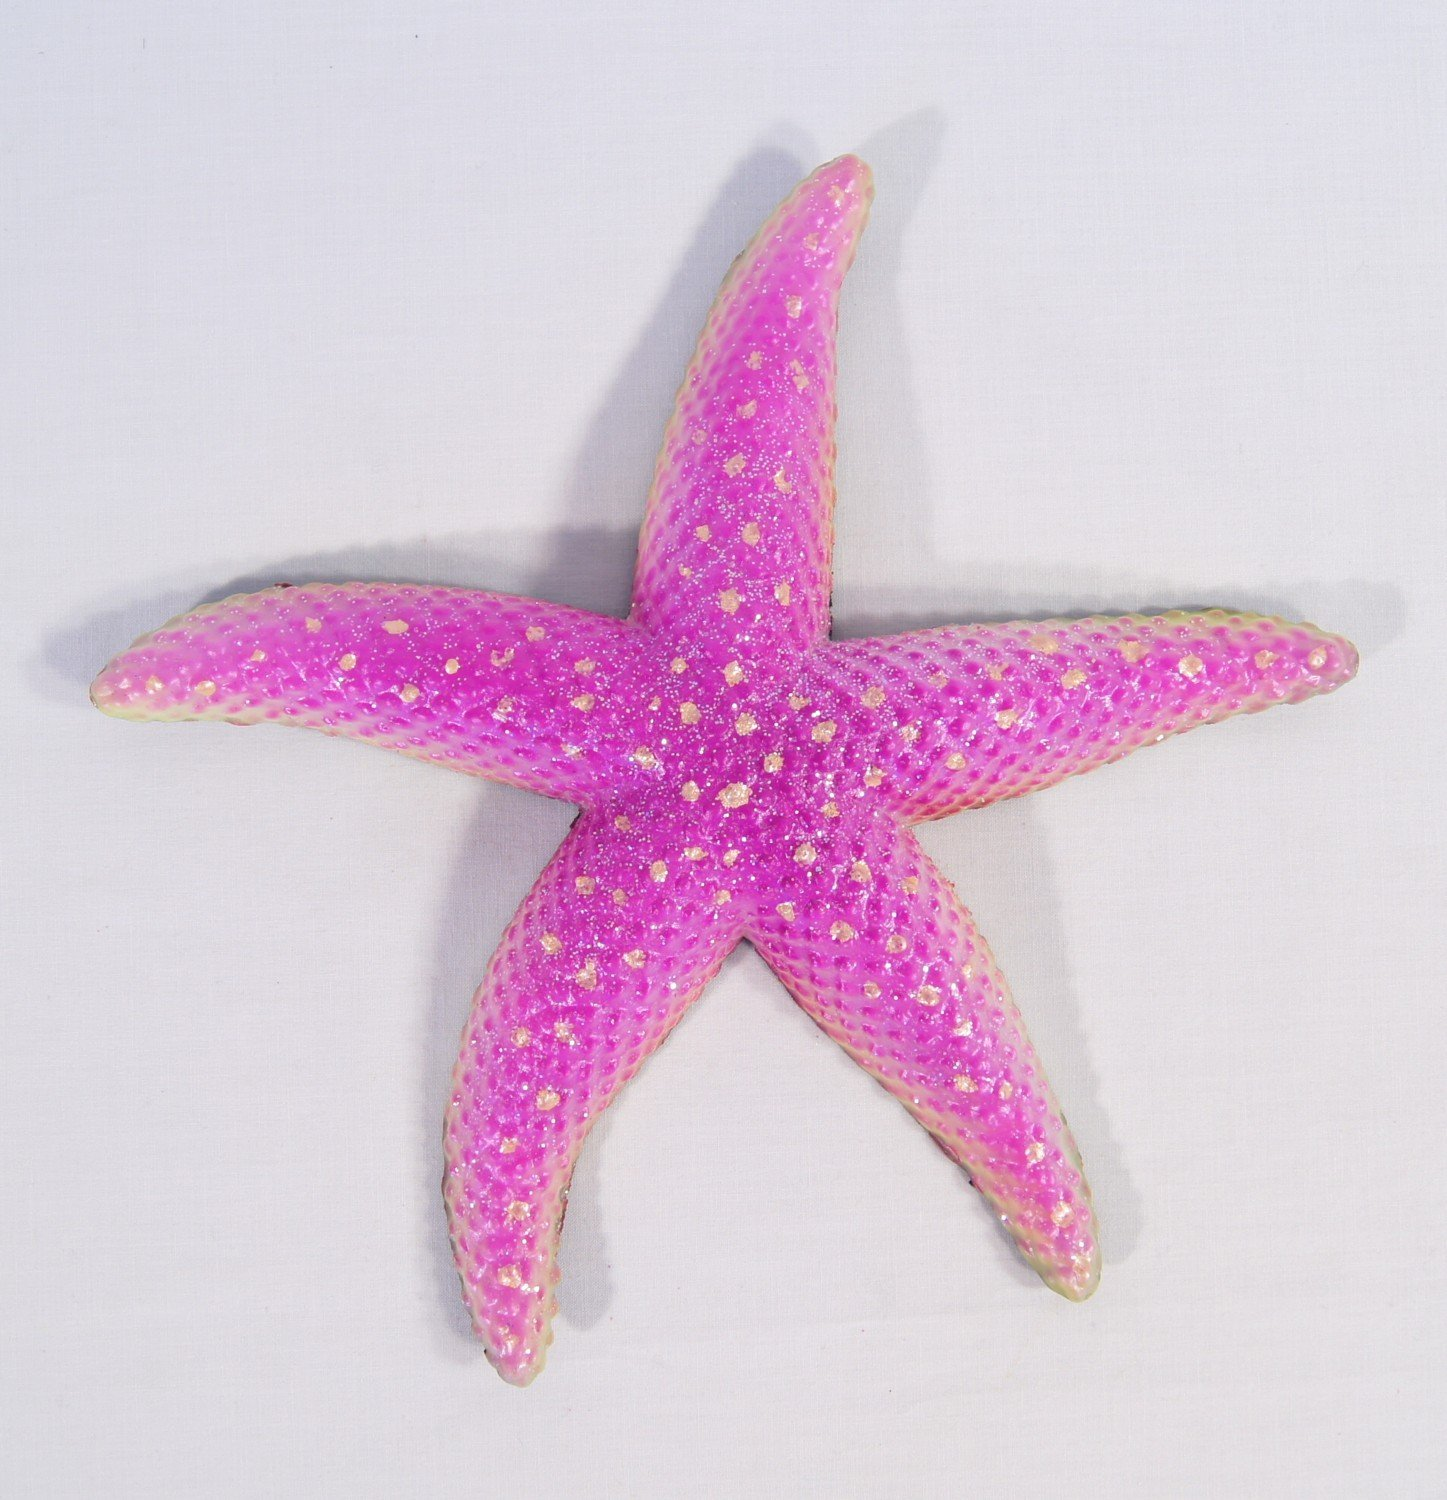 Cheap Starfish Pink, find Starfish Pink deals on line at Alibaba.com